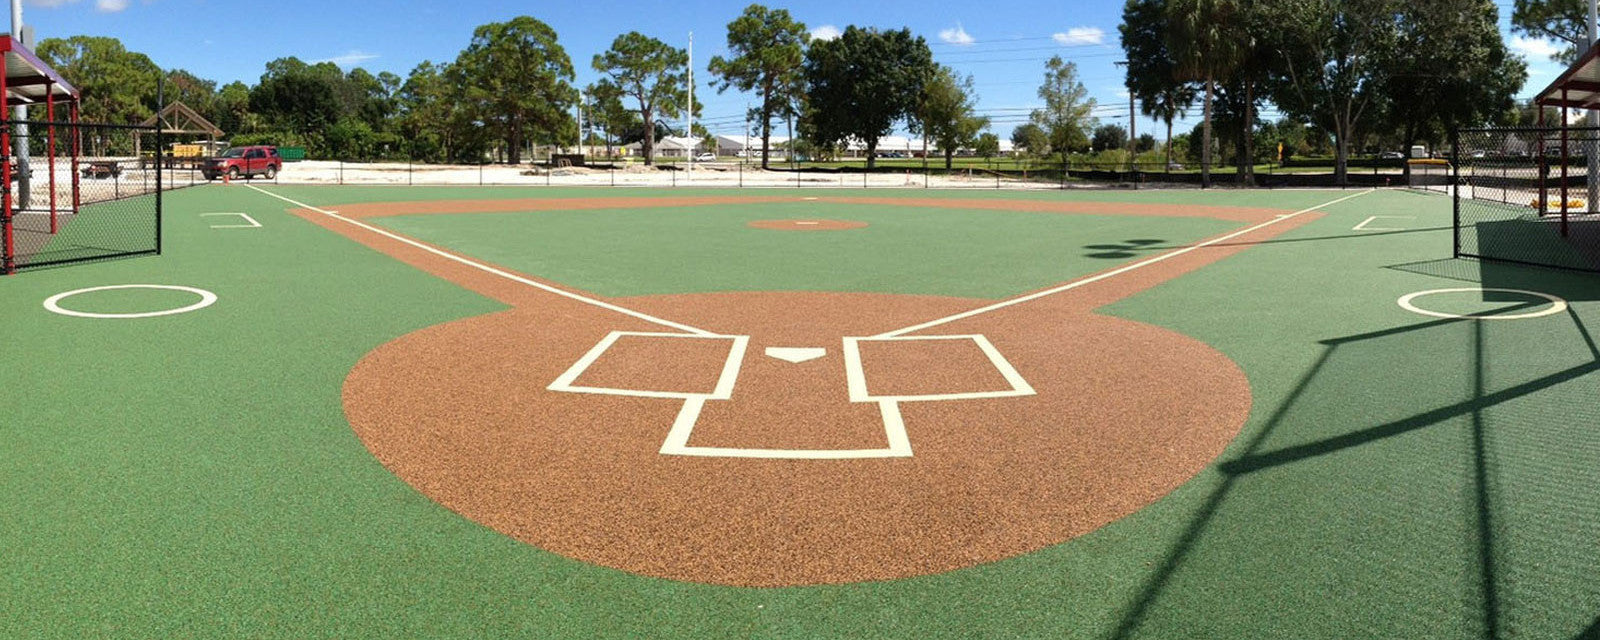 rubber baseball field